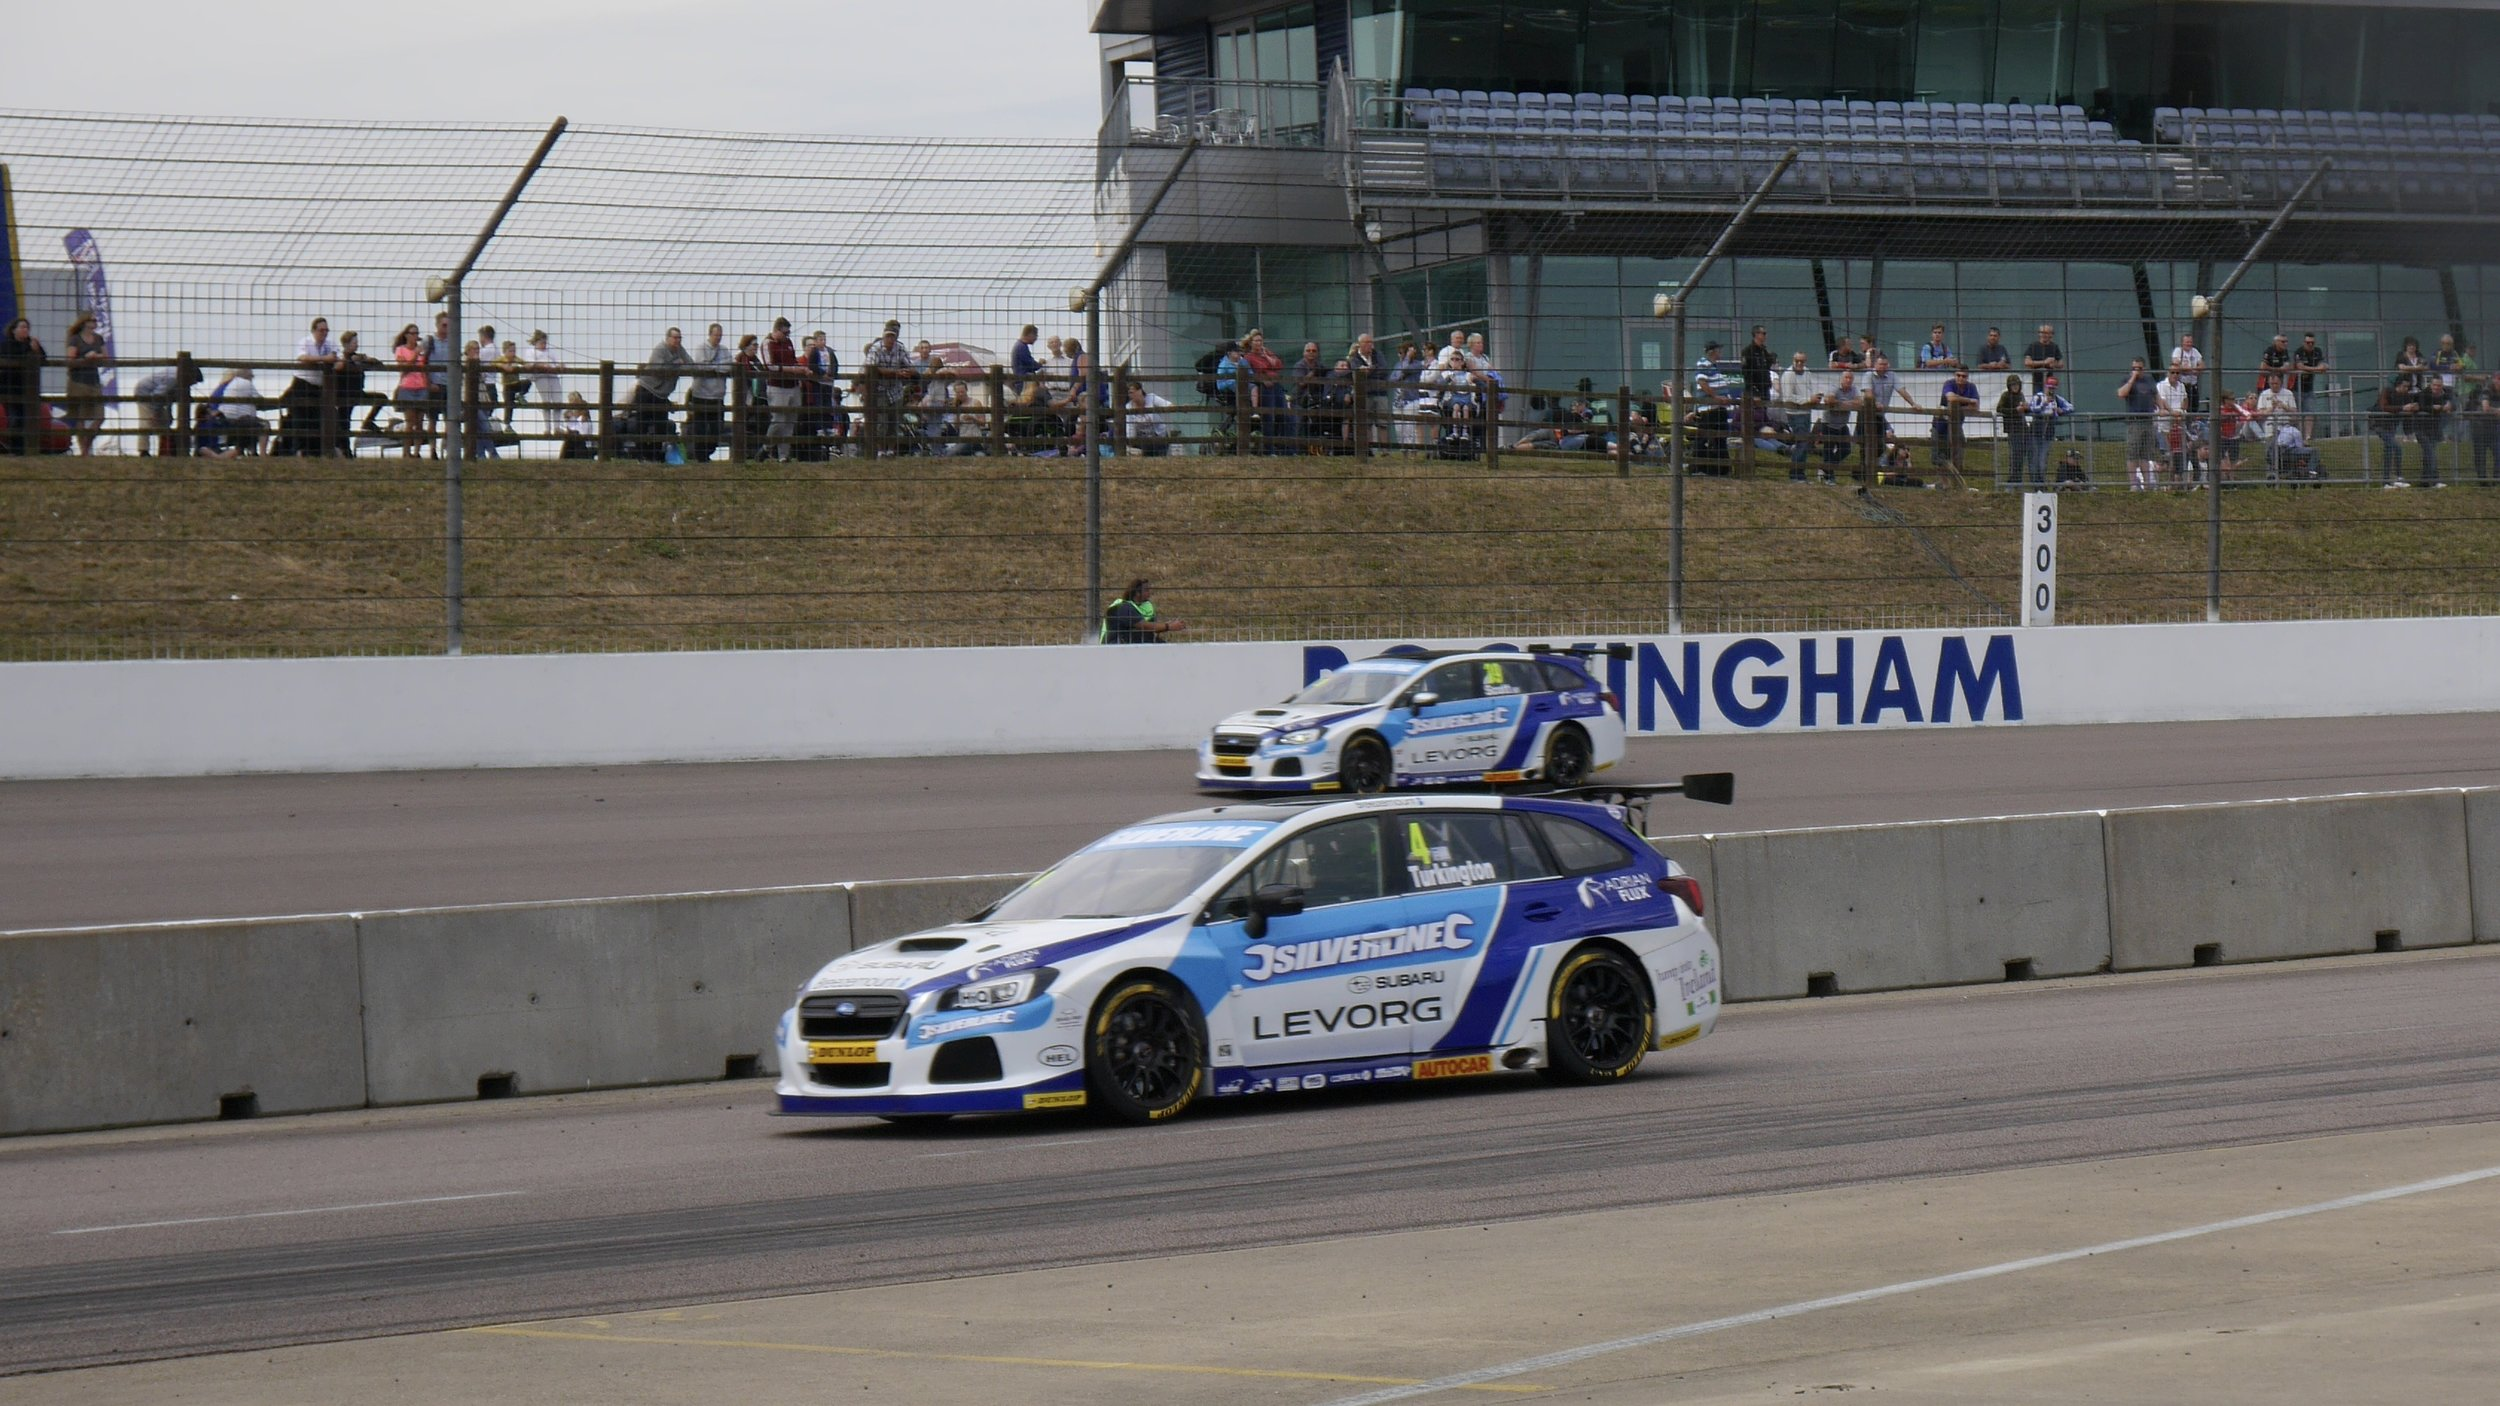 Colin Turkington exits the pits with a model of Warren Scott's Levorg on his roof